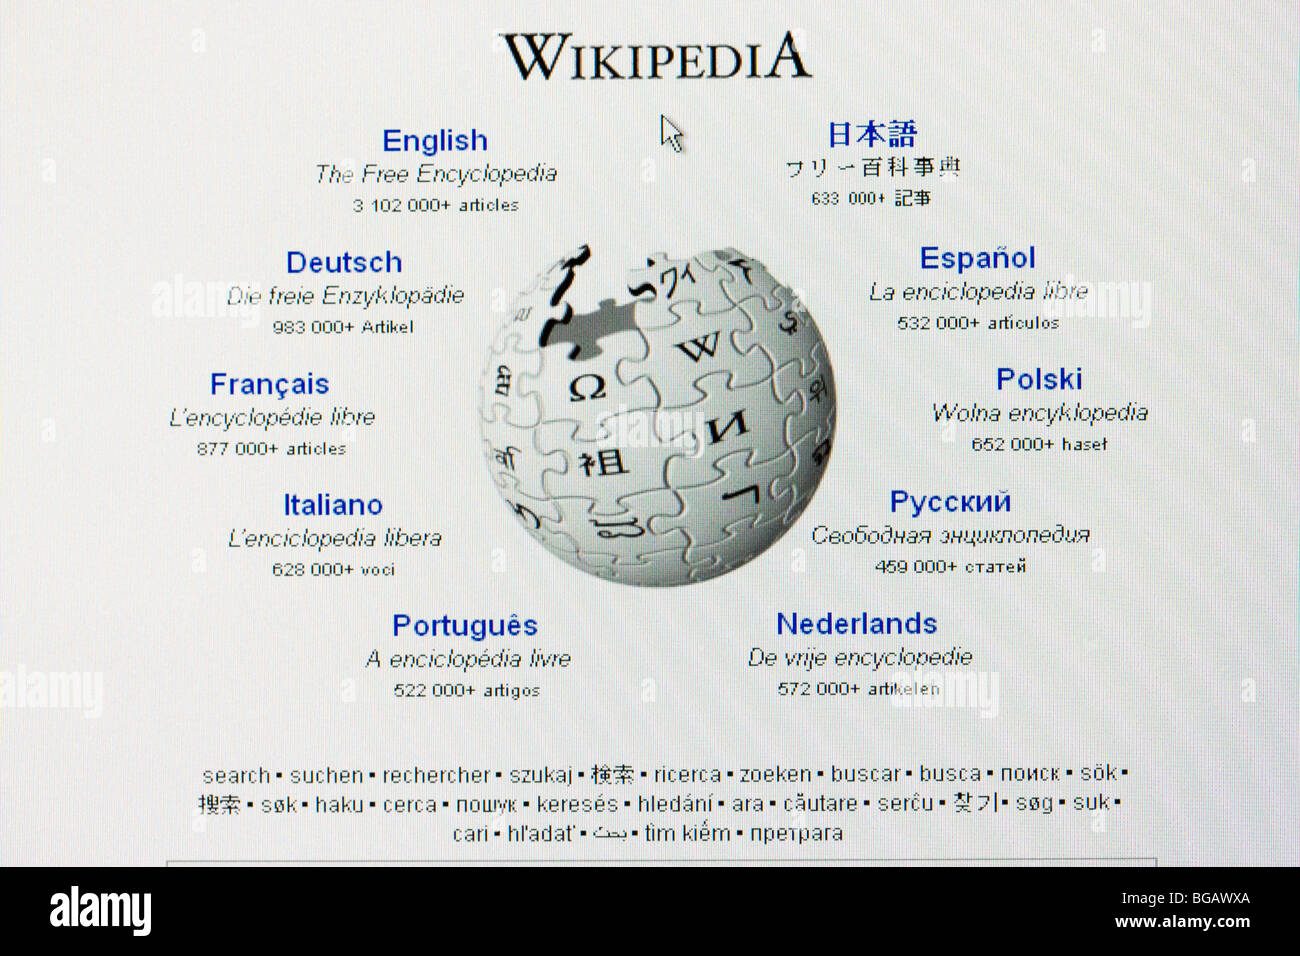 screenshot of wikipedia website for editorial use only - Stock Image